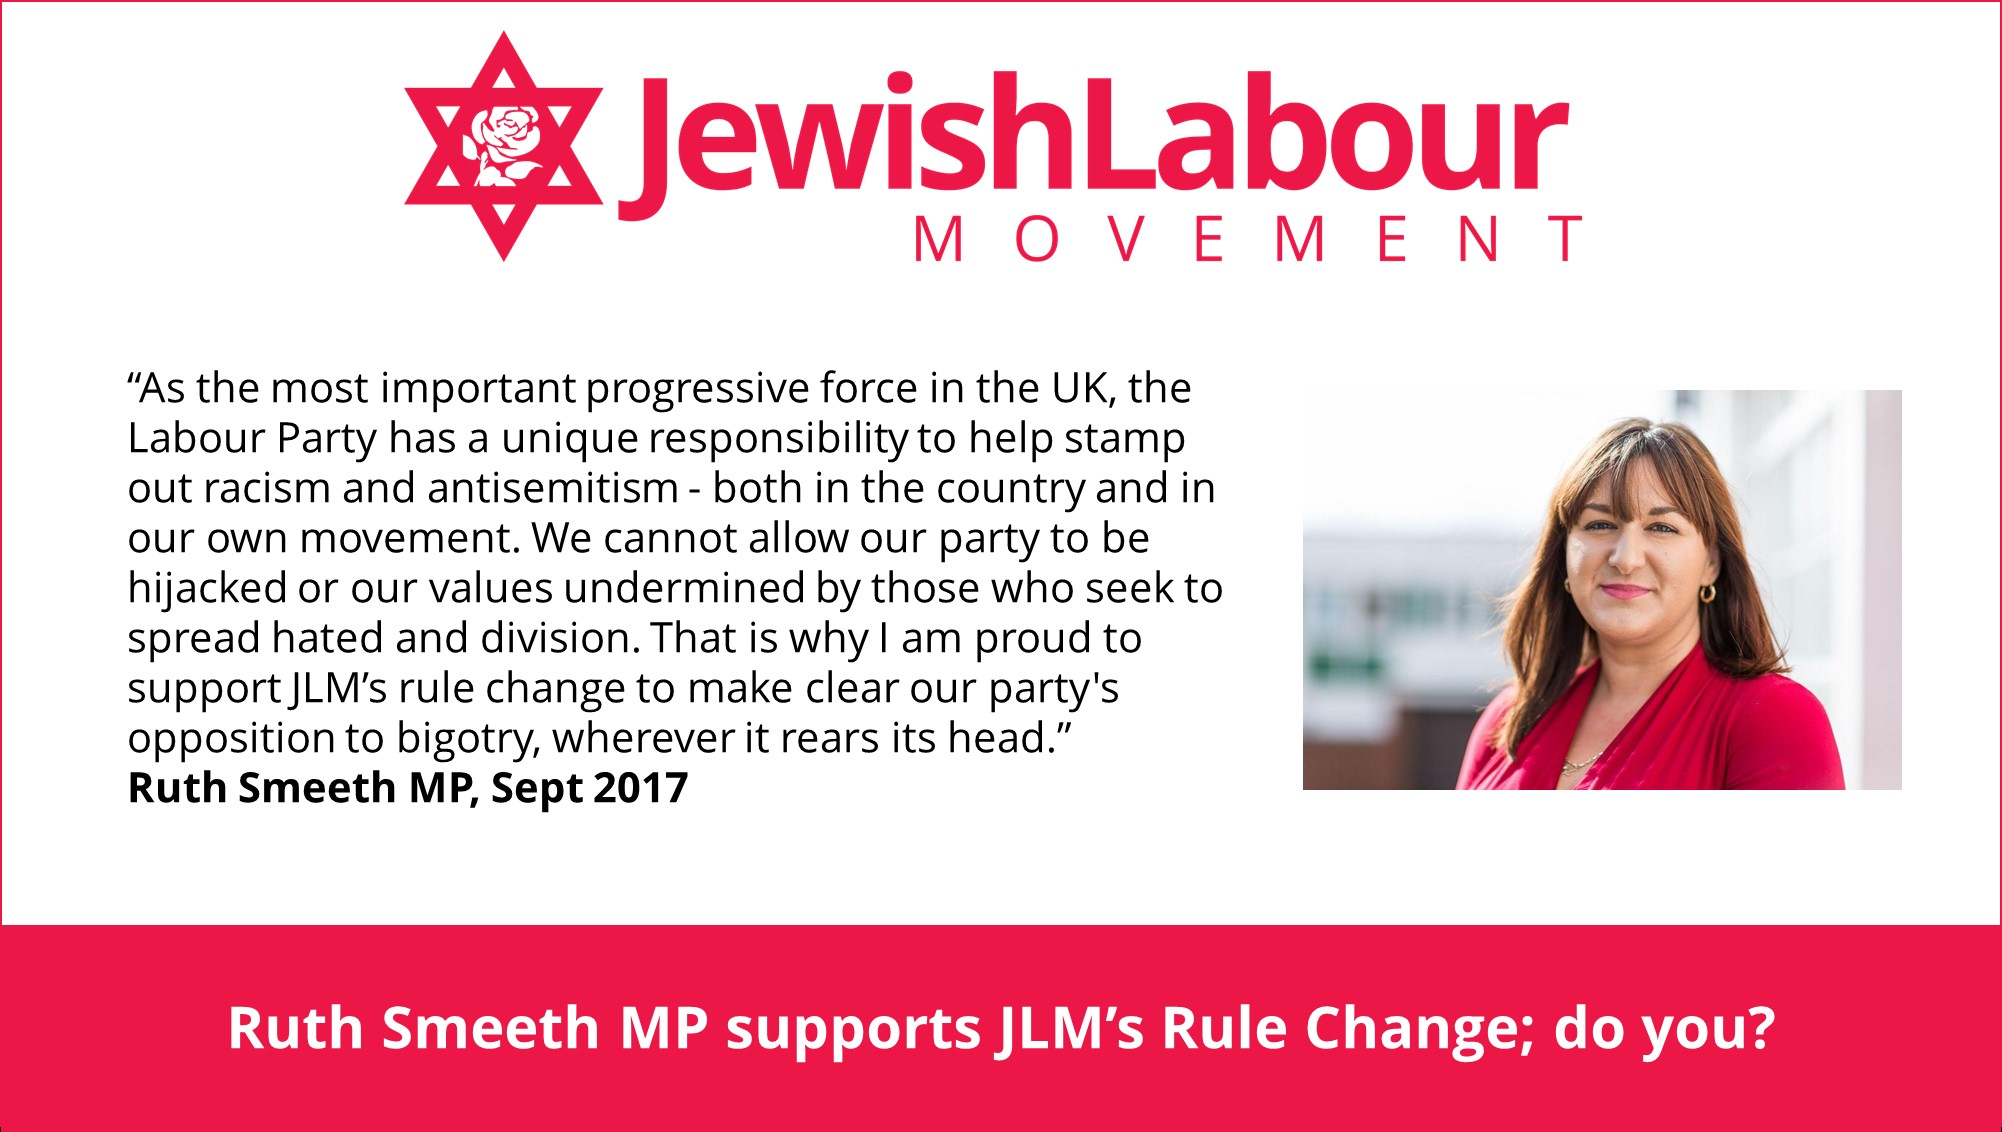 ruth_smeeth_rule_change.jpg